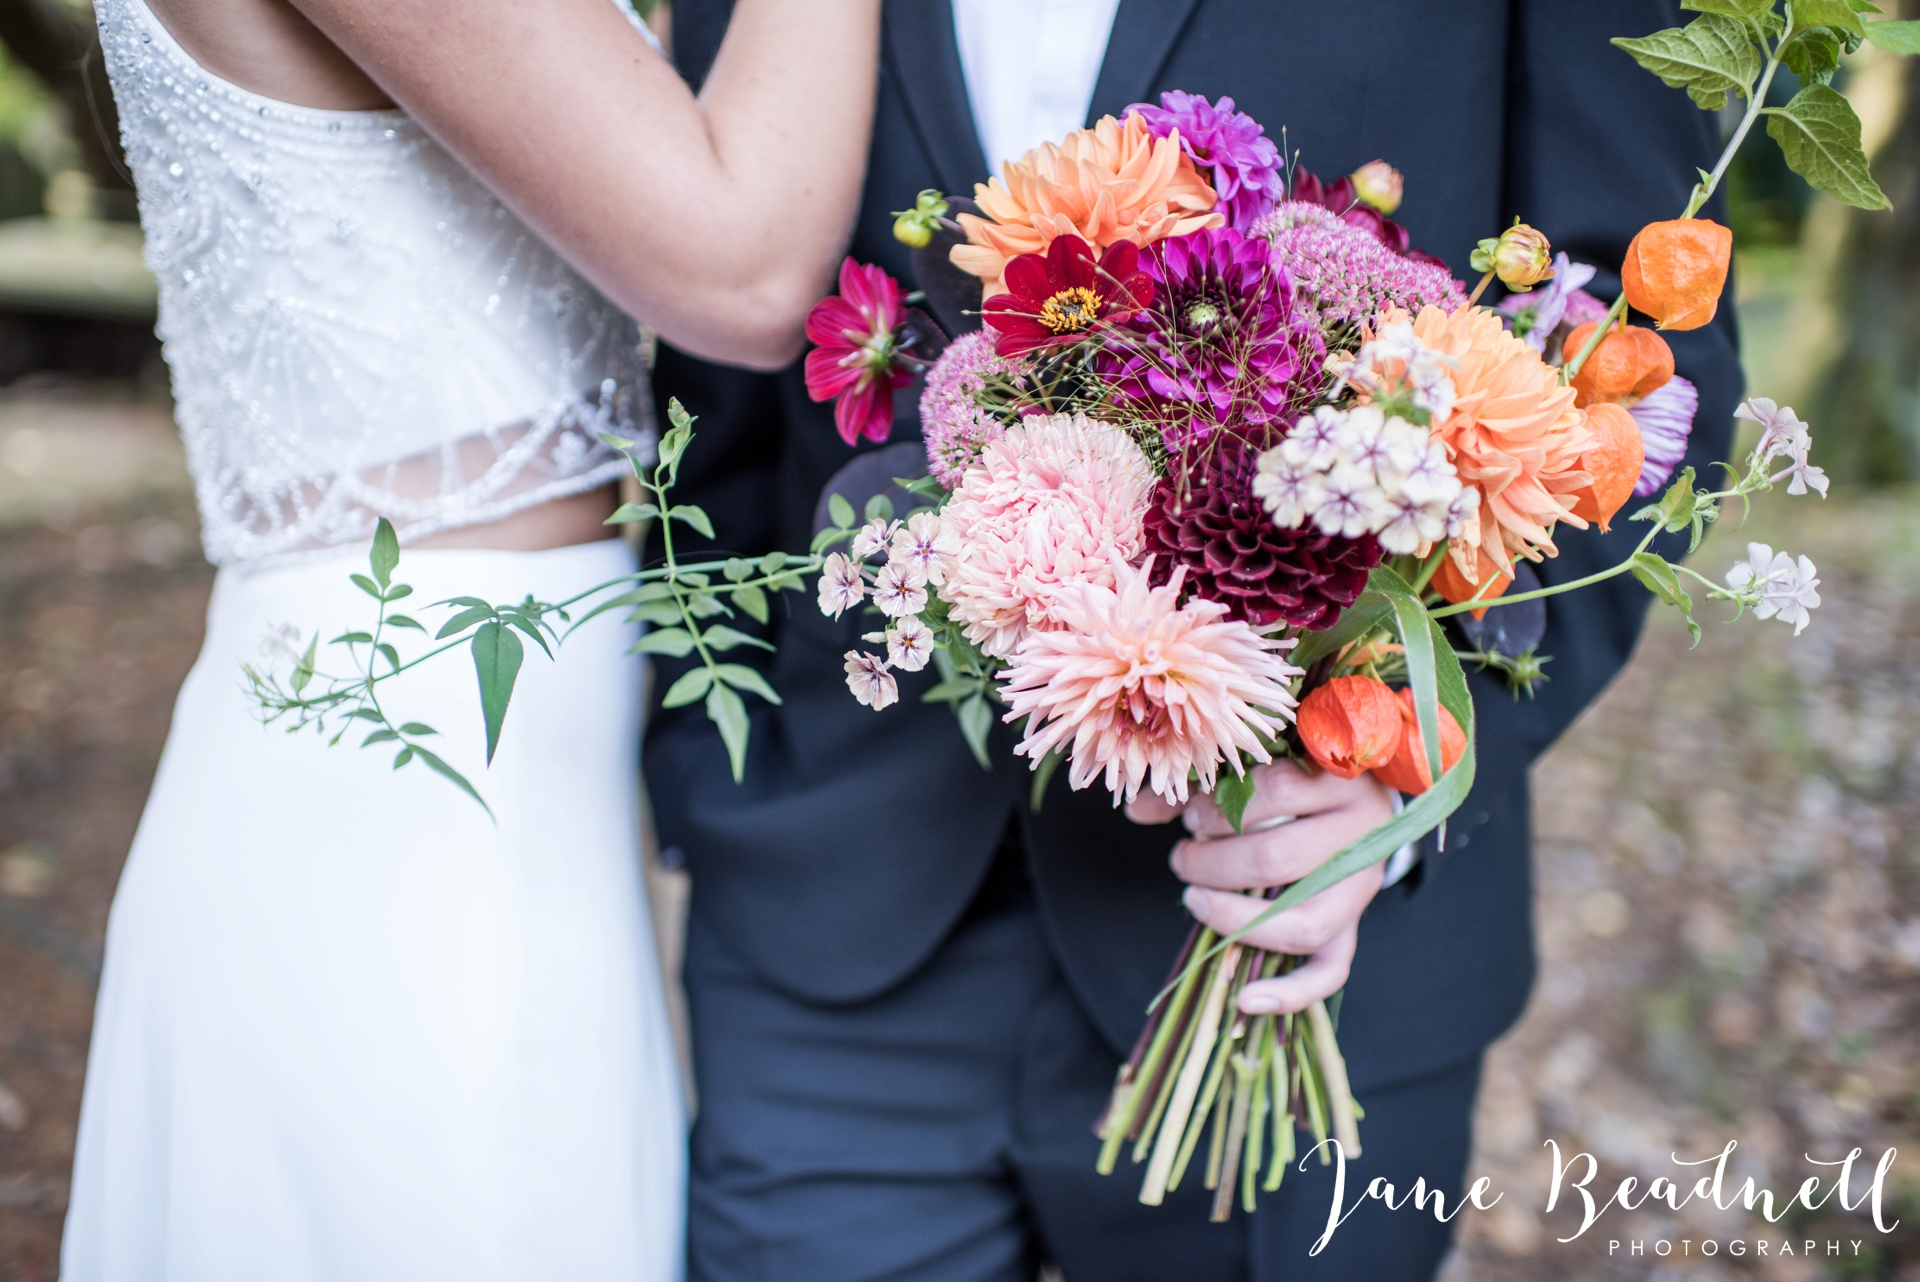 yorkshire-fine-art-wedding-photographer-jane-beadnell-photography-with-leafy-couture-wedding-flowers_0028